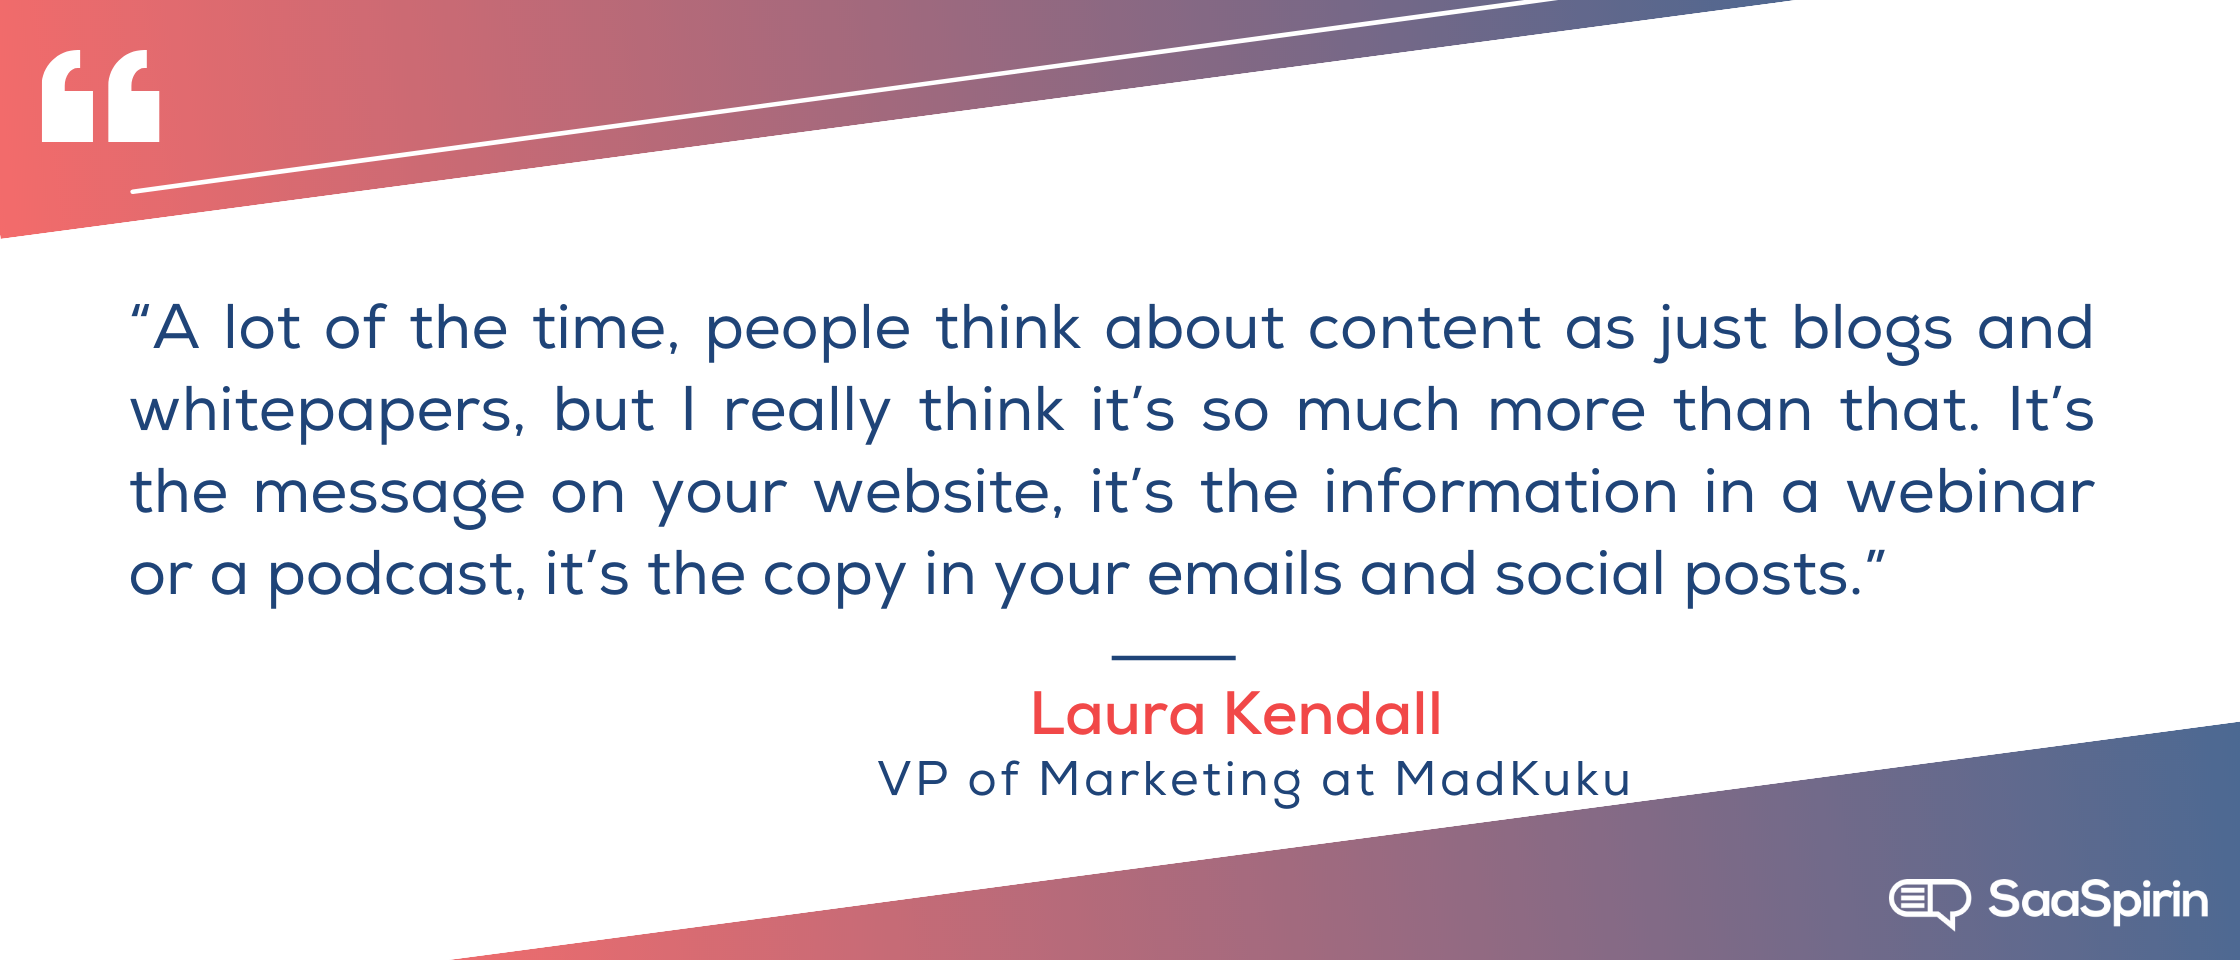 A-lot-of-the-time-people-think-about-content-as-just-blogs-and-whitepapers-but-I-really-think-its-so-much-more-than-that-Its-the-message-on-your-website-its-the-information-in-a-webinar-or-a-podcast-its-the-copy.png